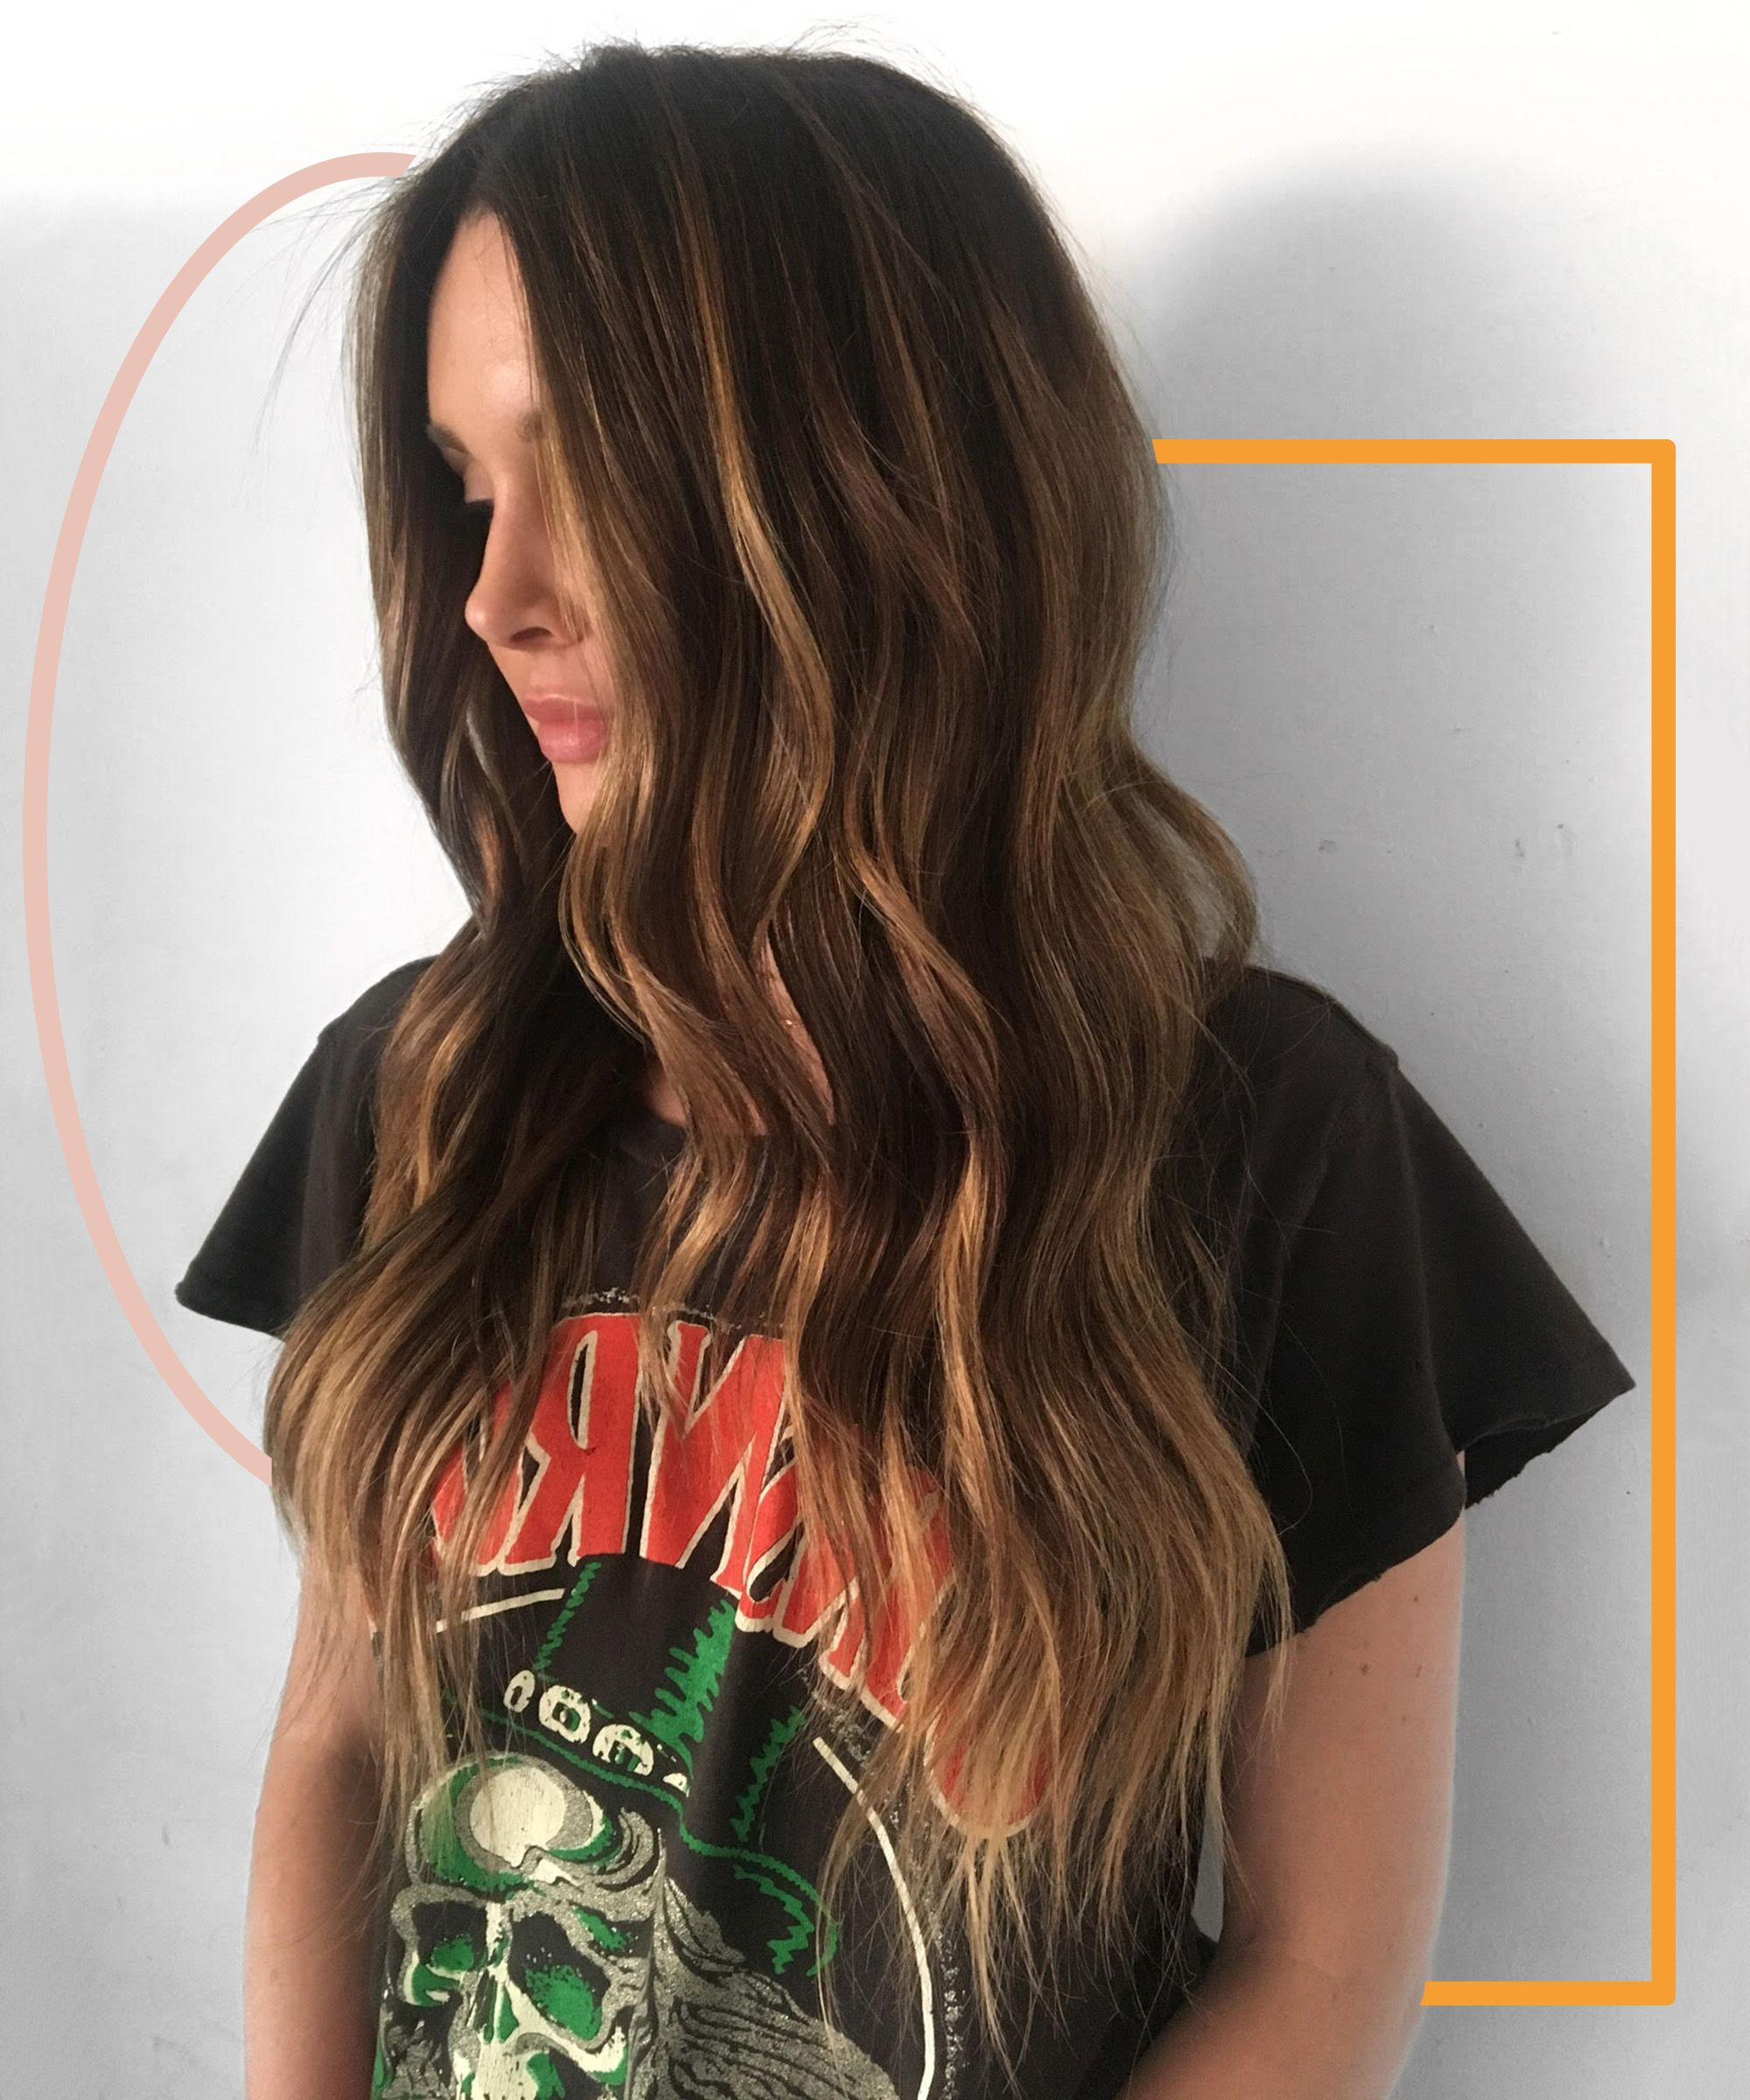 Best And Newest Medium Brown Tones Hairstyles With Subtle Highlights Regarding 2019 Hair Color Trends That Will Be Huge This Winter (View 11 of 20)